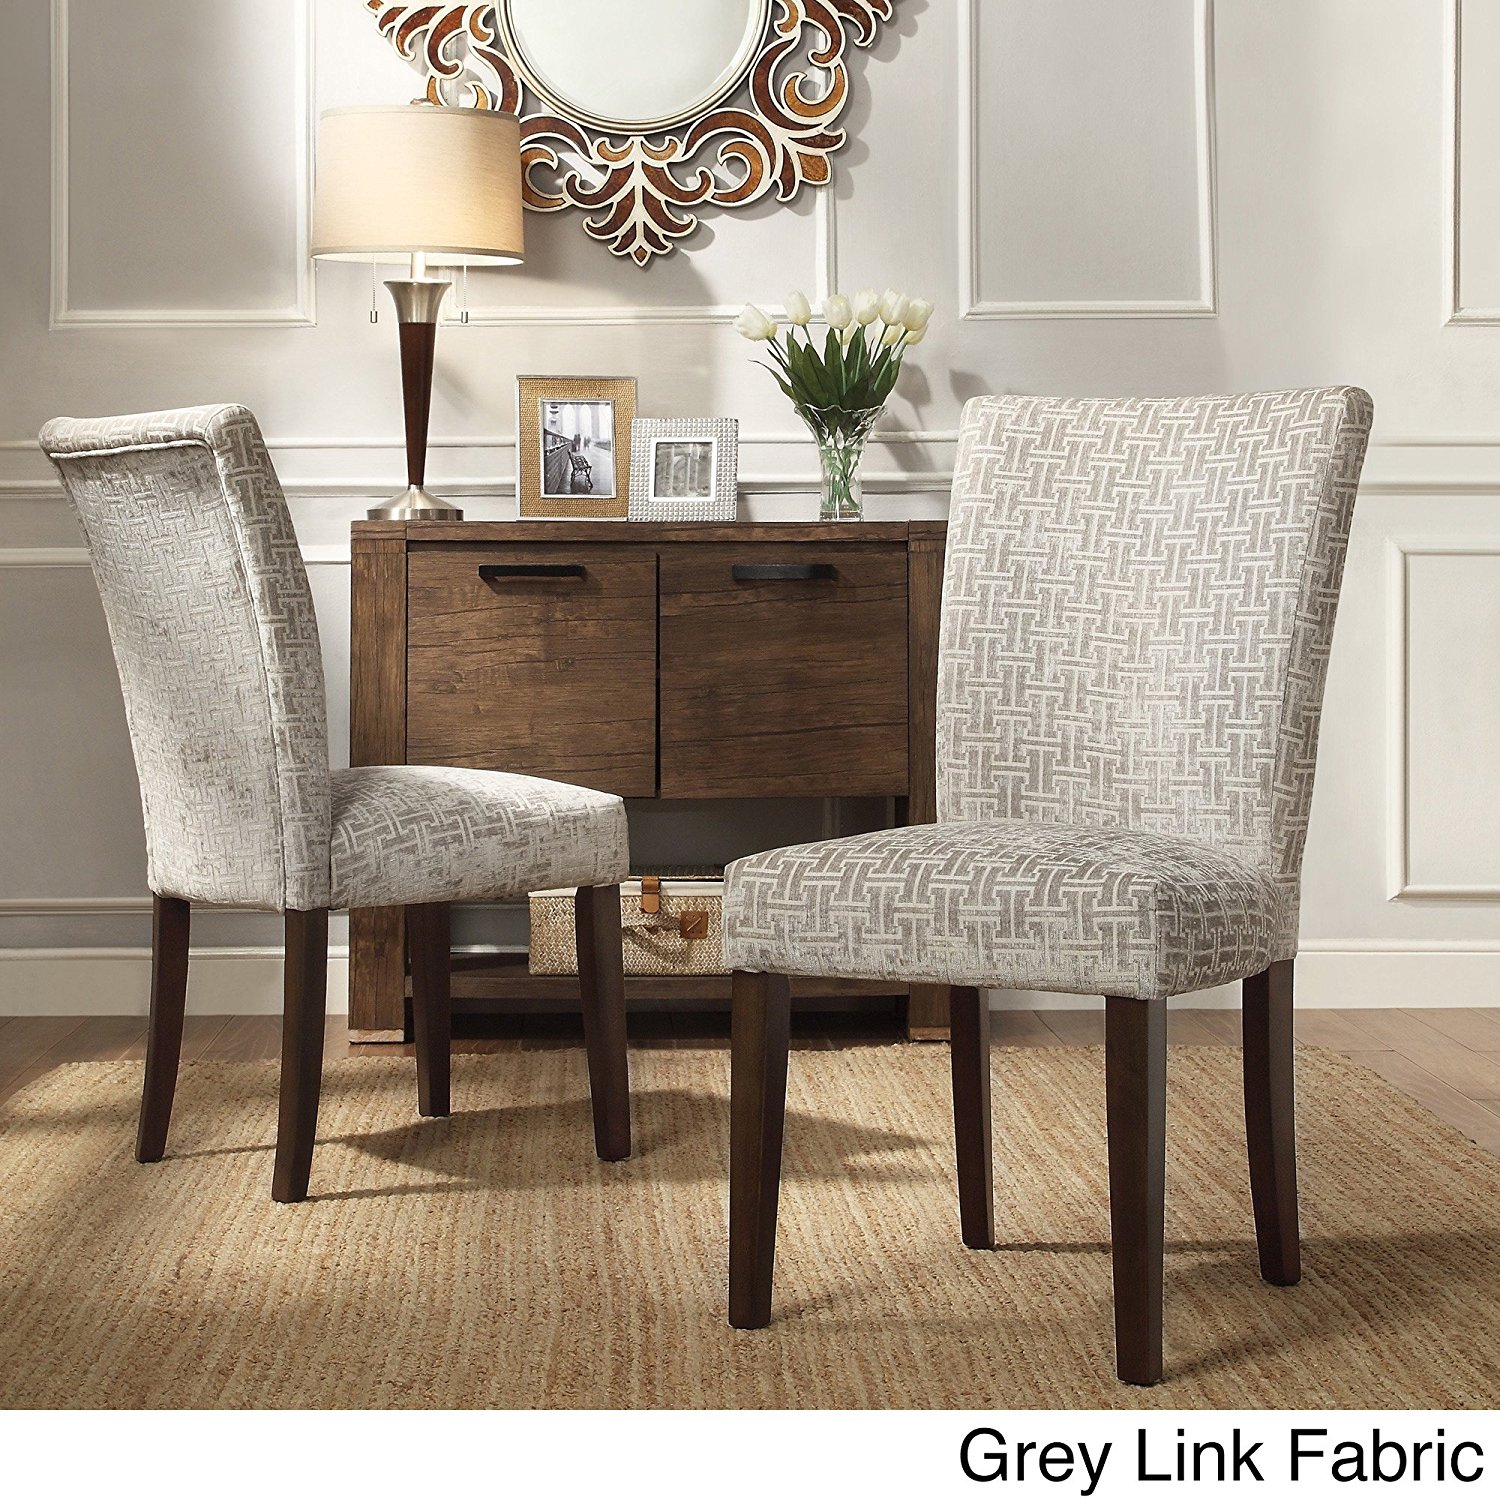 Cheap grey dining room chairs find grey dining room chairs deals on get quotations bistro dining chairs set of 2 grey link fabric parsons side chair dzzzfo